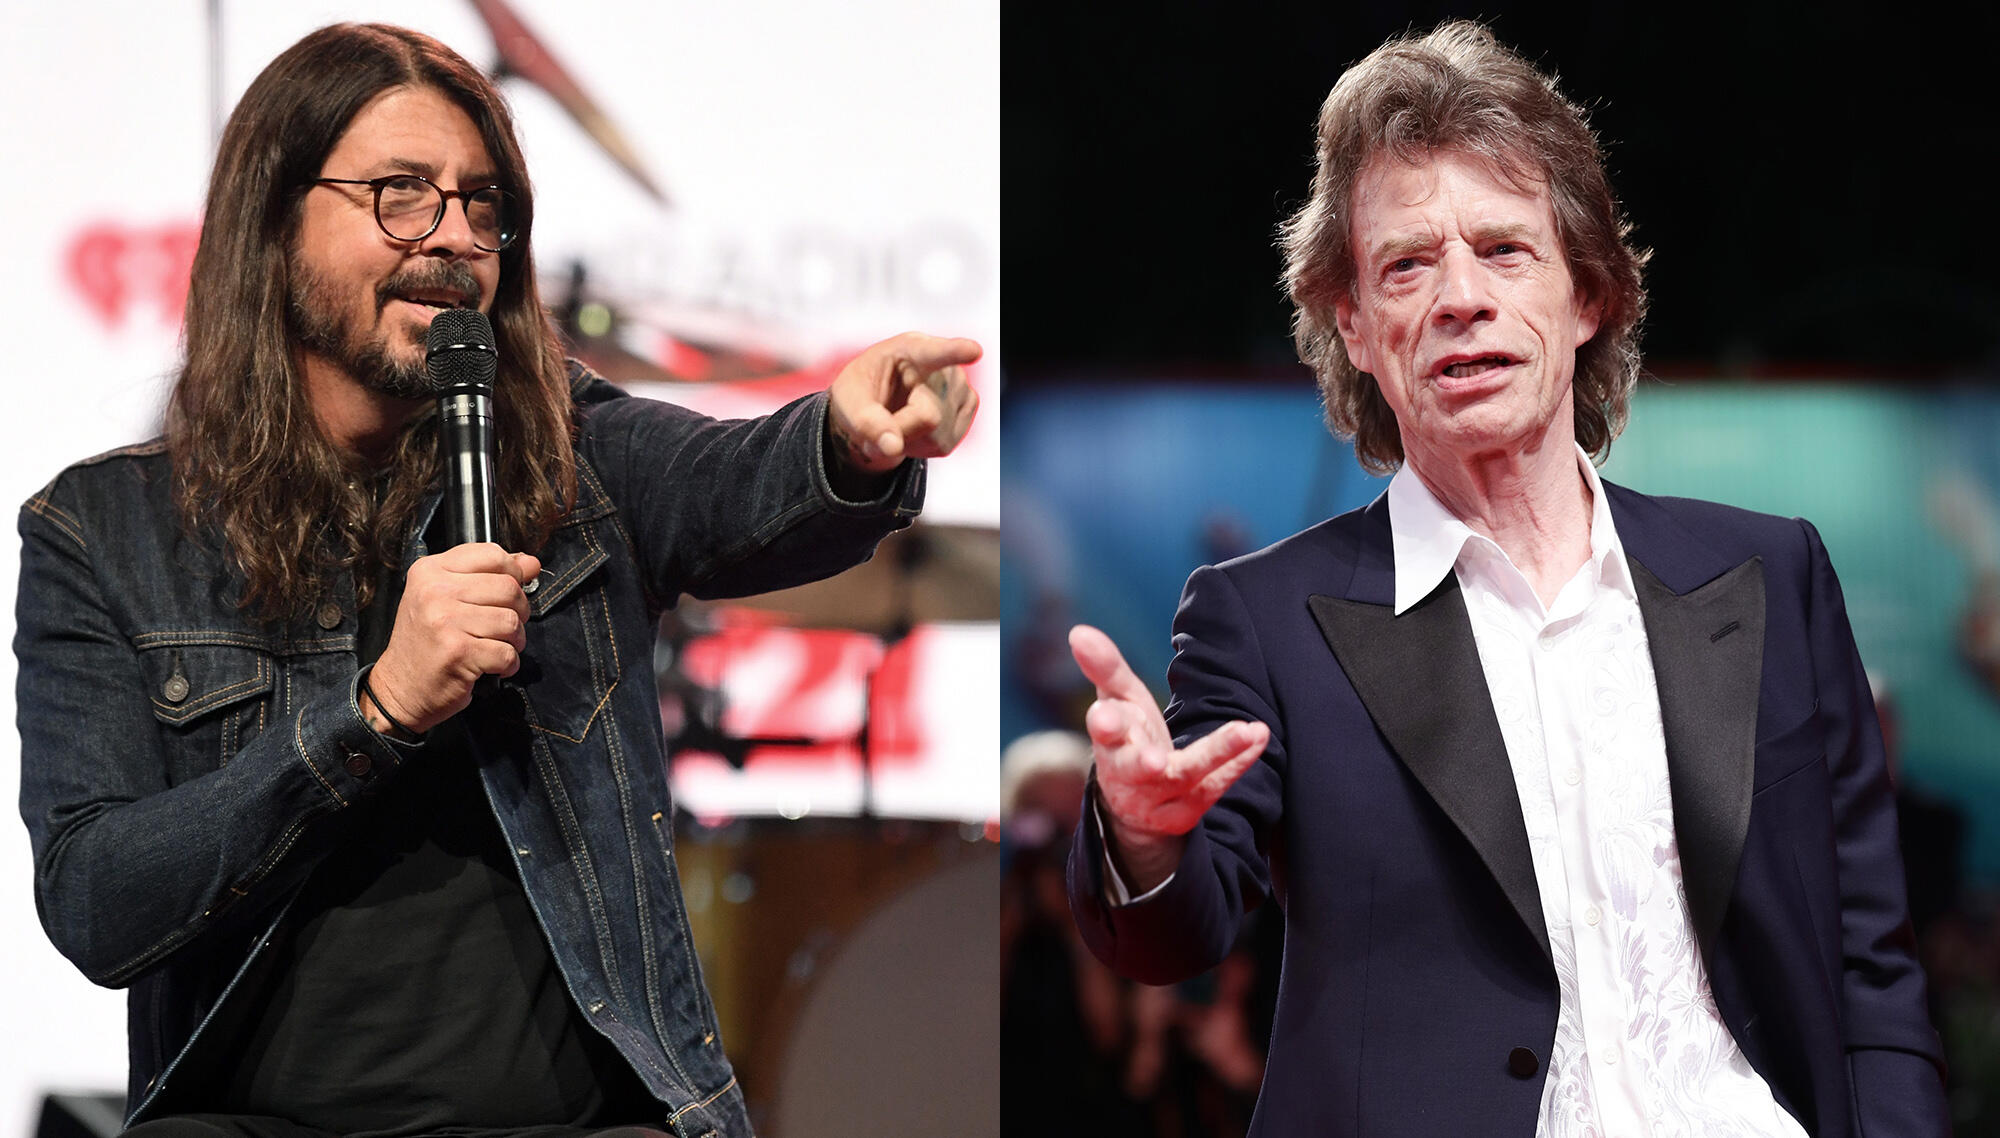 Dave Grohl Says Mick Jagger Texted Him Out Of Nowhere For 'Eazy Sleazy'